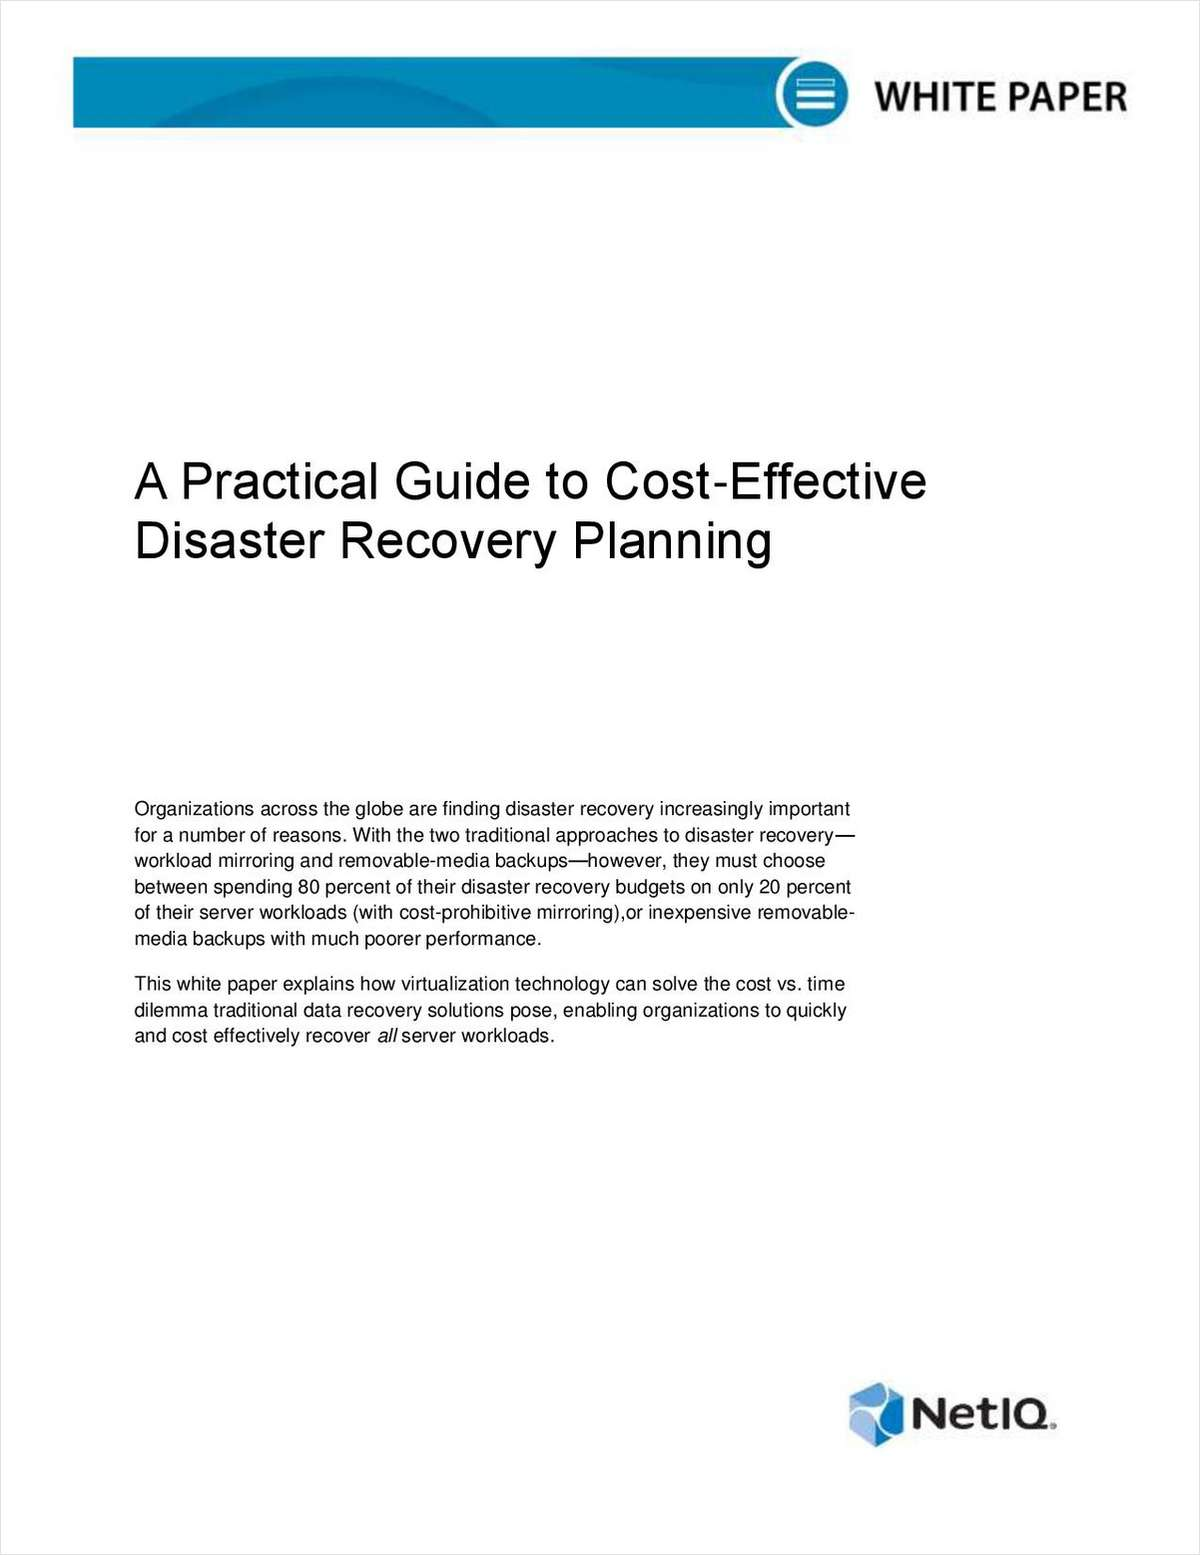 Practical Guide to Cost-Effective Disaster Recovery Planning